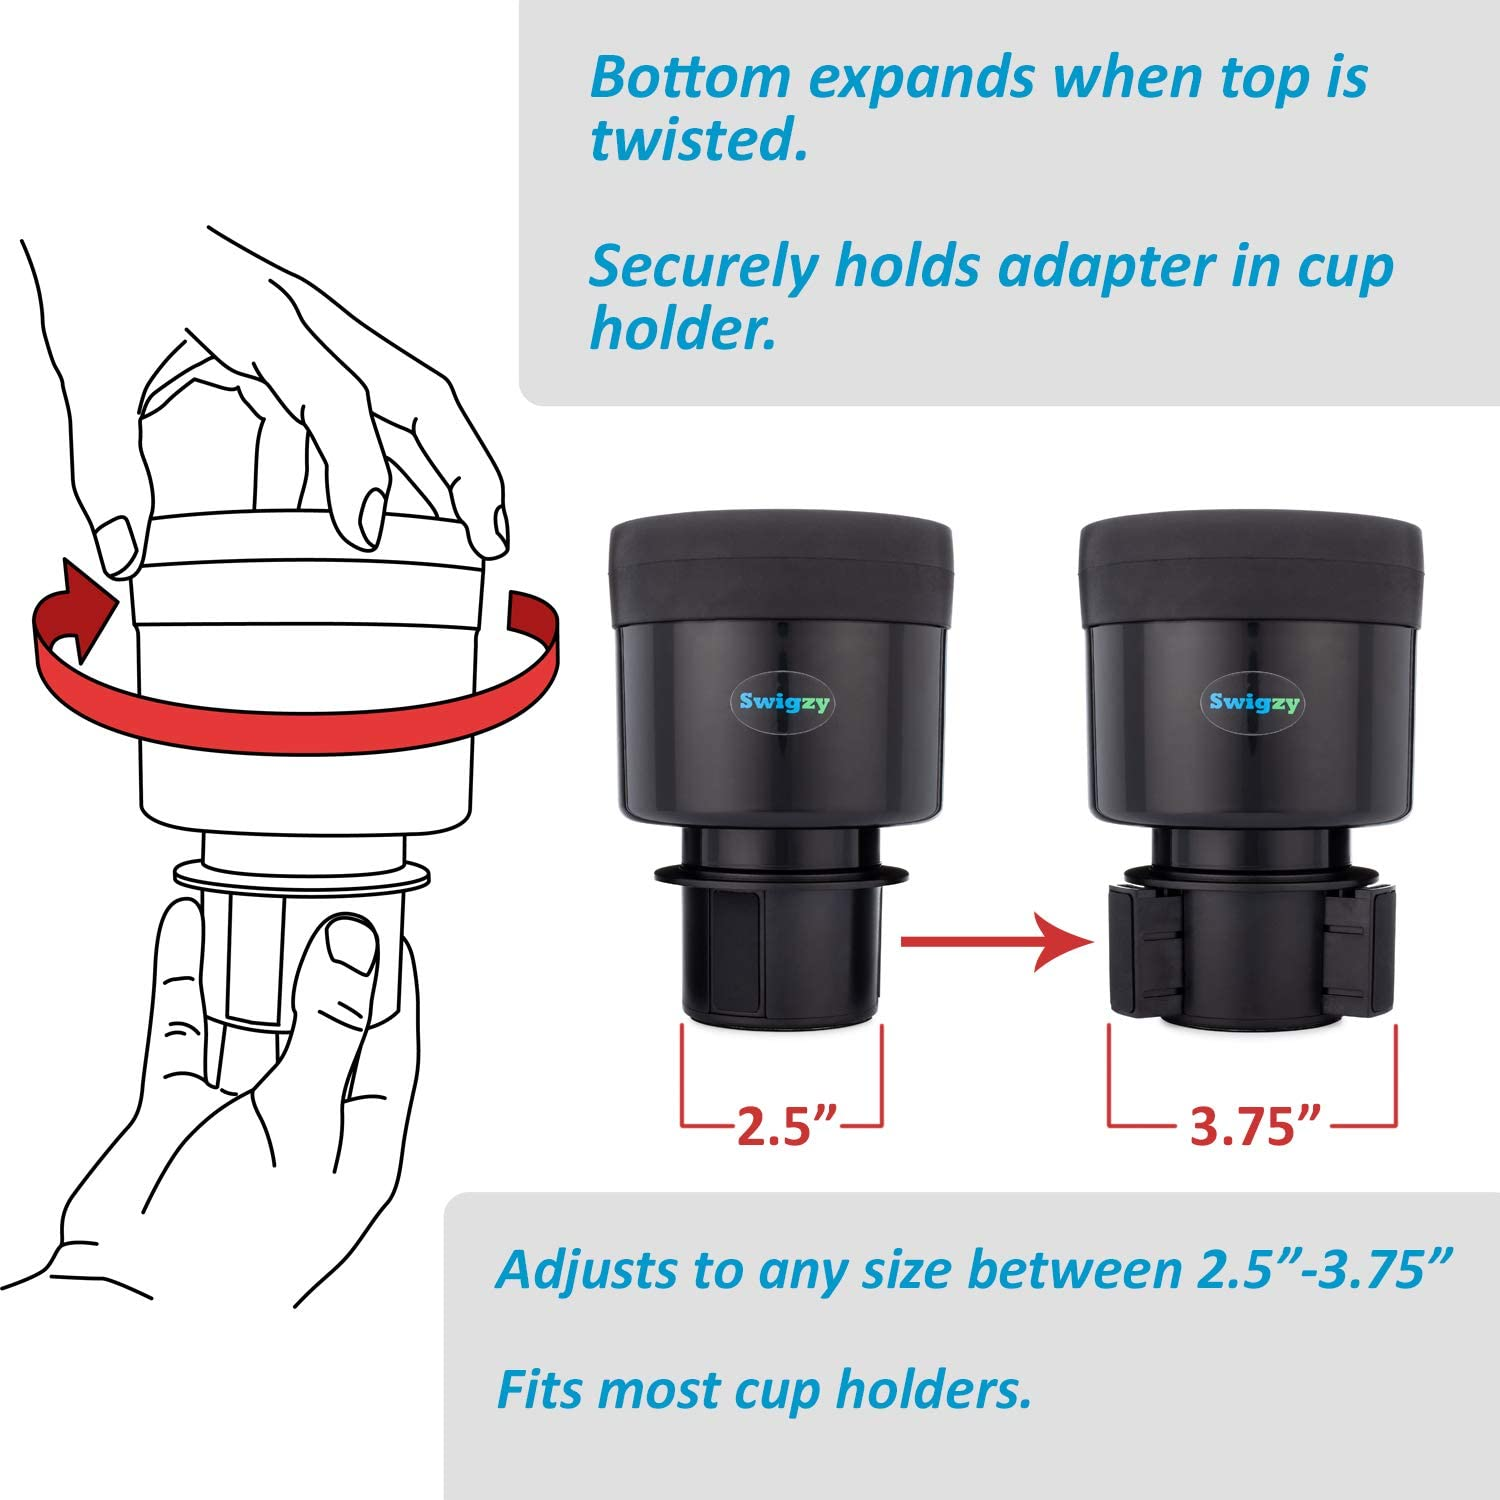 Large Drinks and More Car Accessory Insert Expander for Mugs OxGord Cup Holder Adapter 3-Ring Adjustable /& Extendable Securely Fits 32oz//40oz Bottles Cups